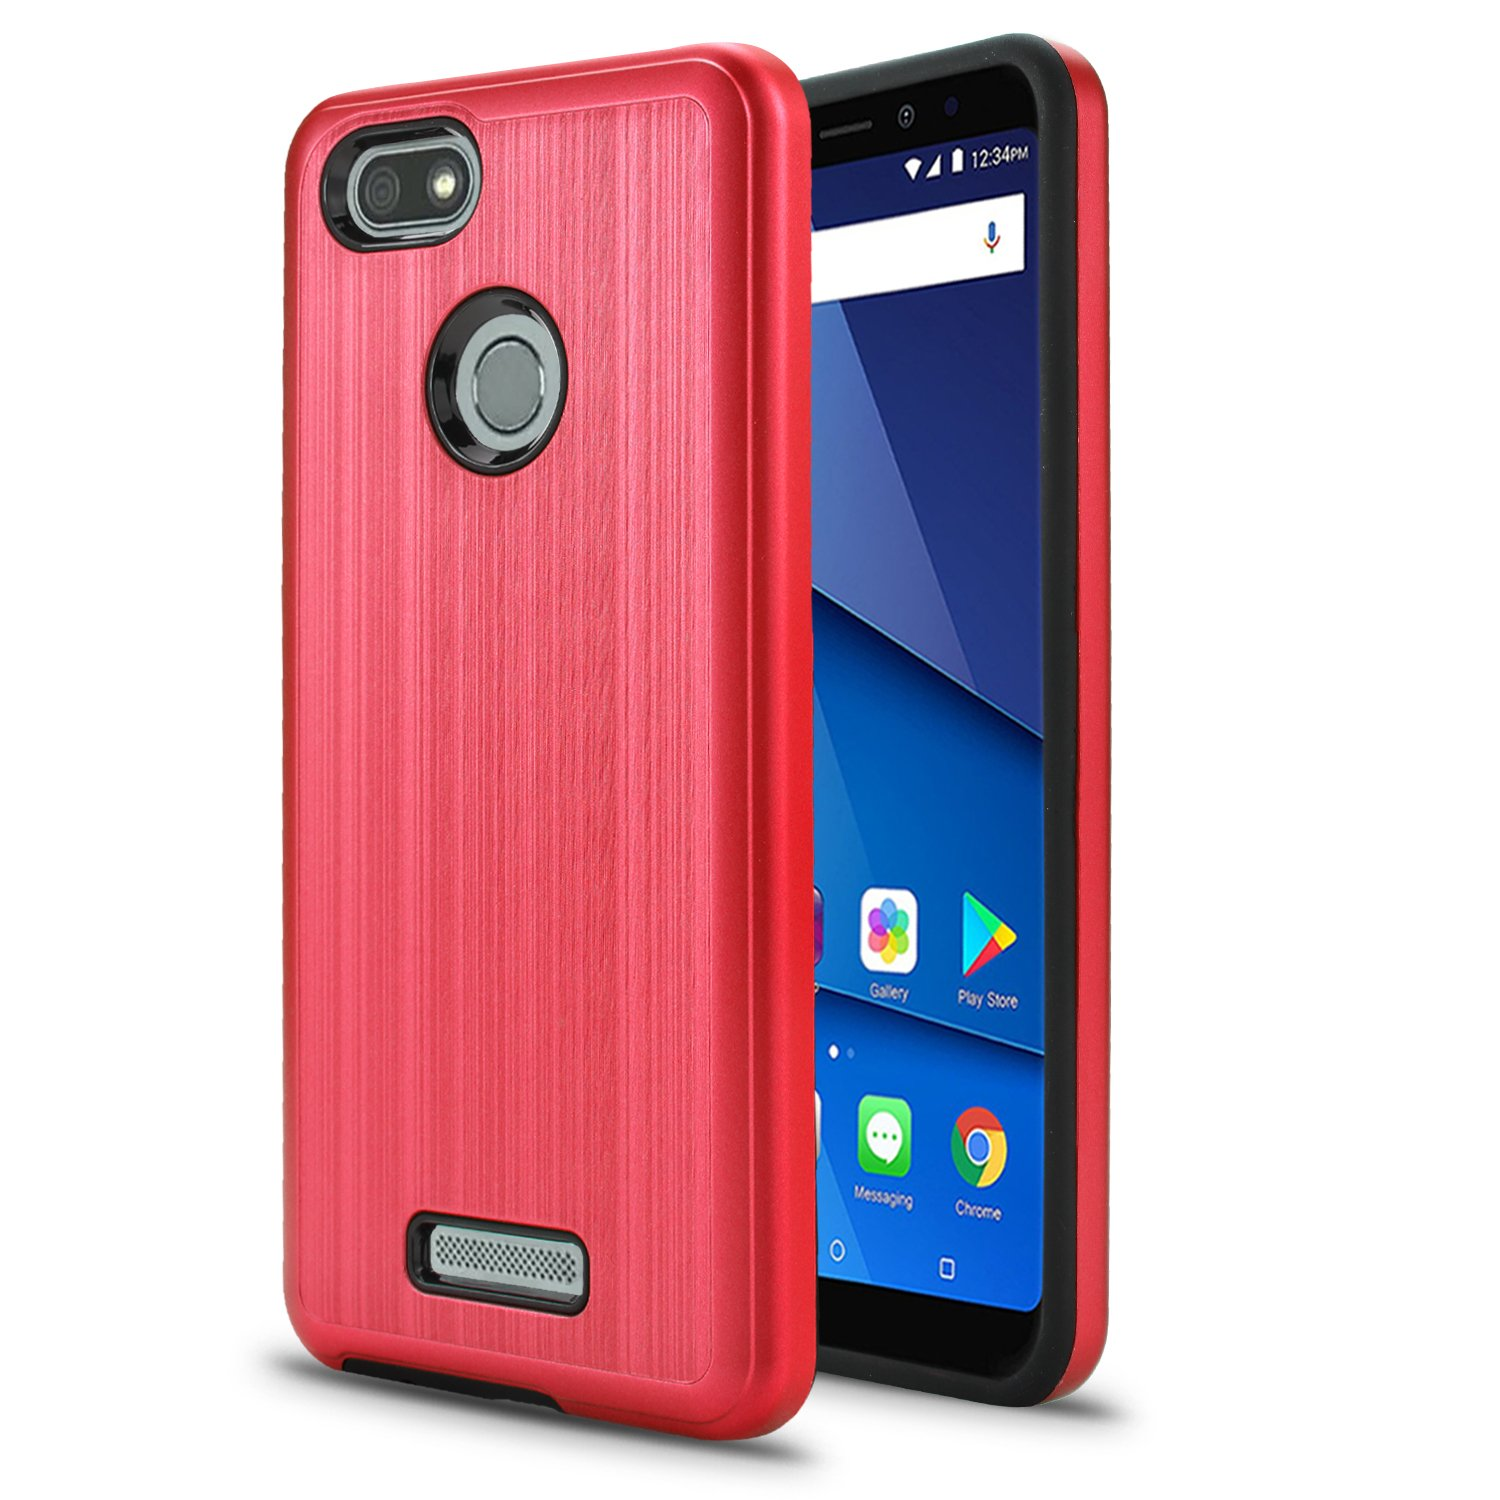 BLU Vivo XL3 case, (V0250WW) 5.5 inch case, [ New Frontier Wireless], Tough Hybrid + Dual Layer Shockproof Drop Protection Metallic Brushed Case Cover for BLU Vivo XL3 case (VGC Hot Pink)